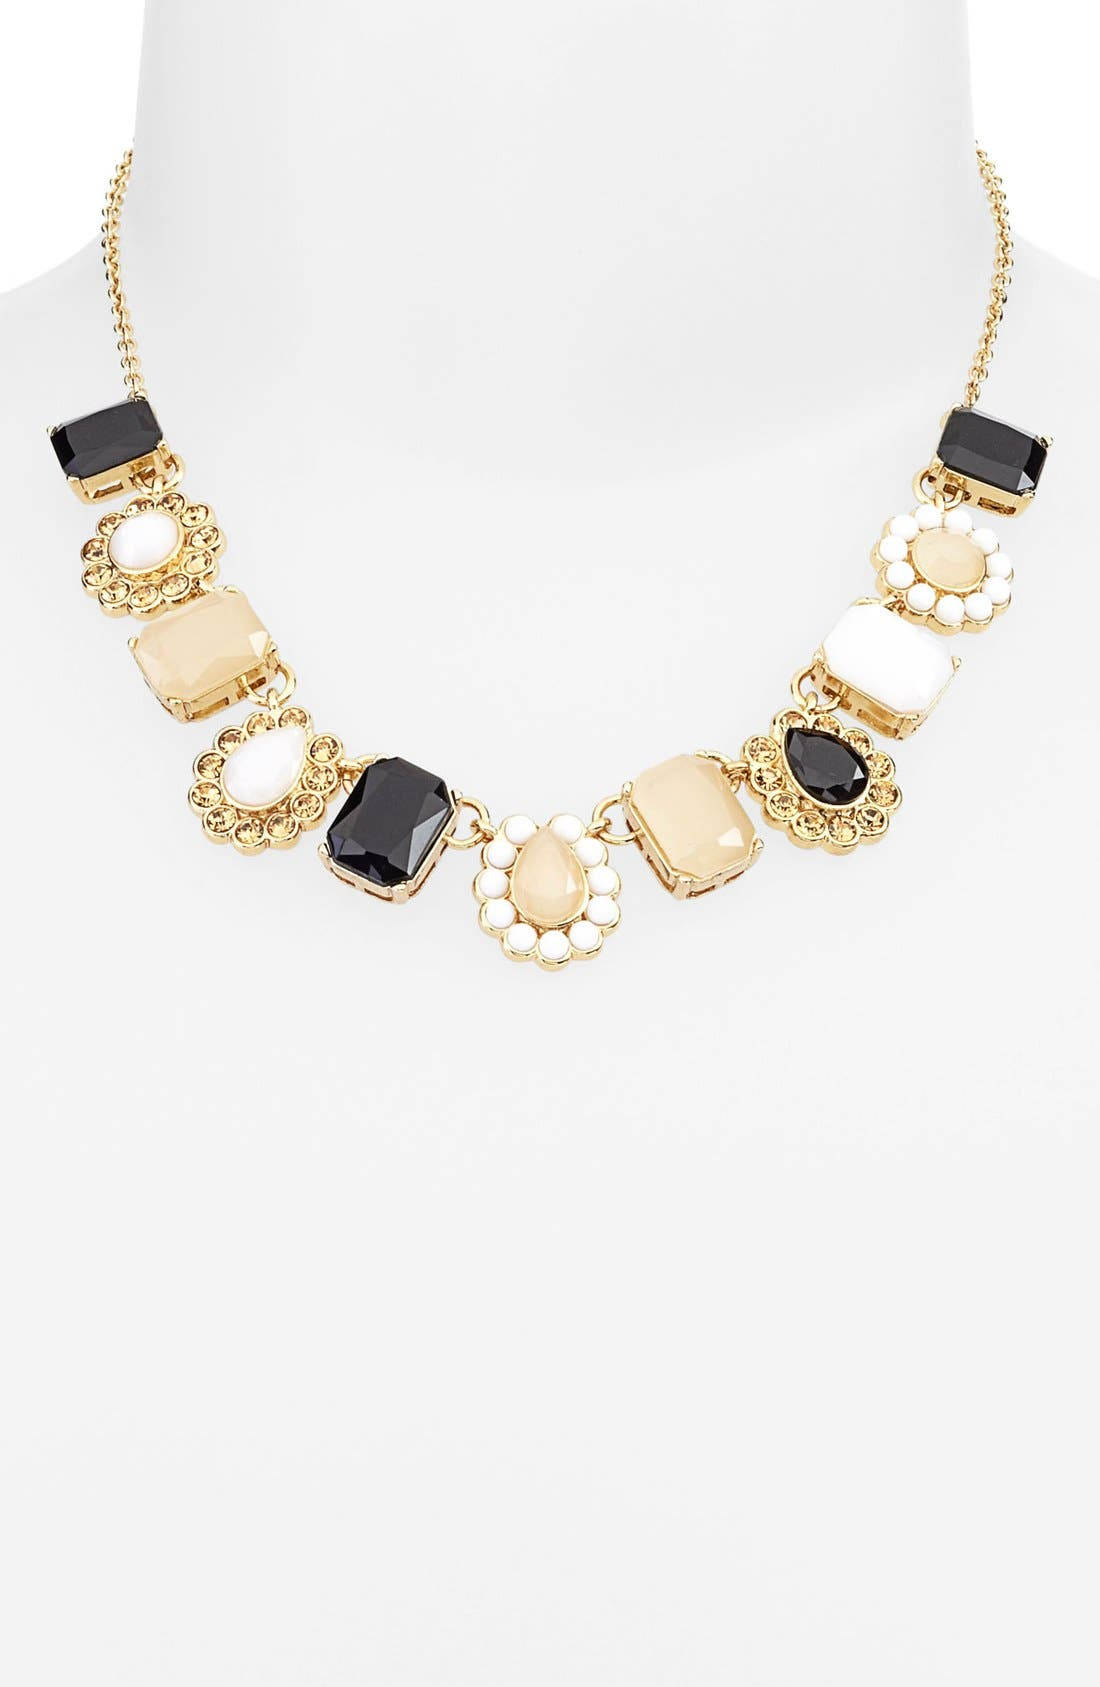 Main Image - kate spade new york 'run around' framed stone collar necklace